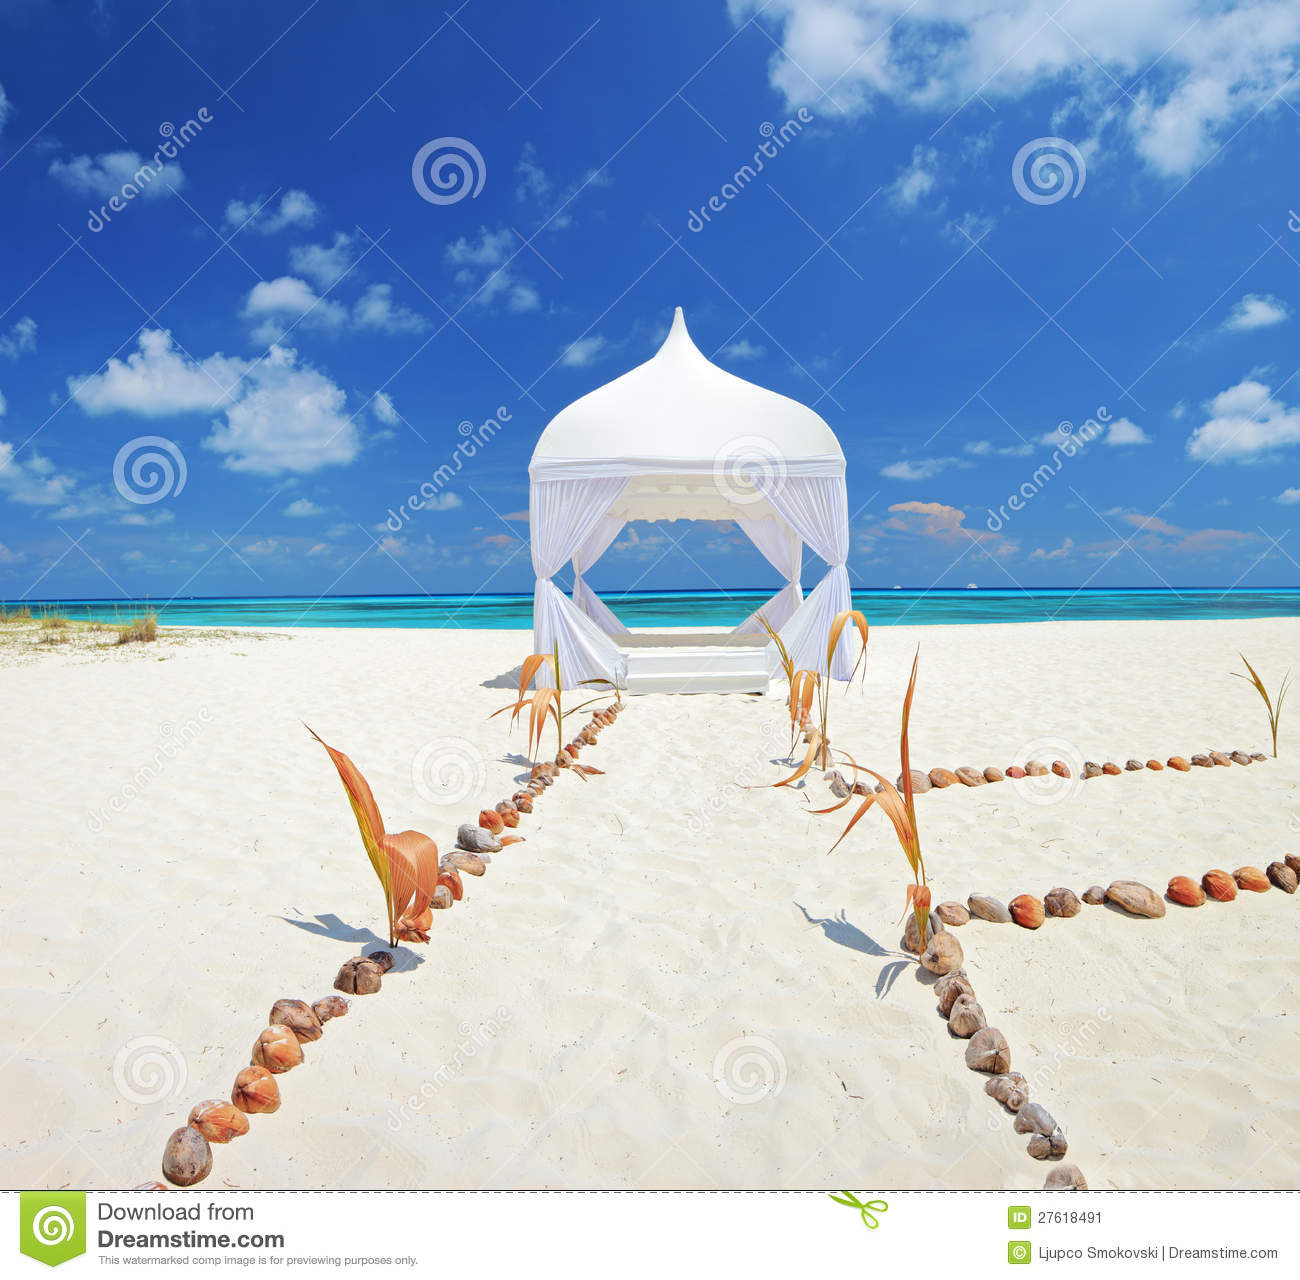 Royalty Free Stock Photo Download Wedding Tent On A Beach At Maldives